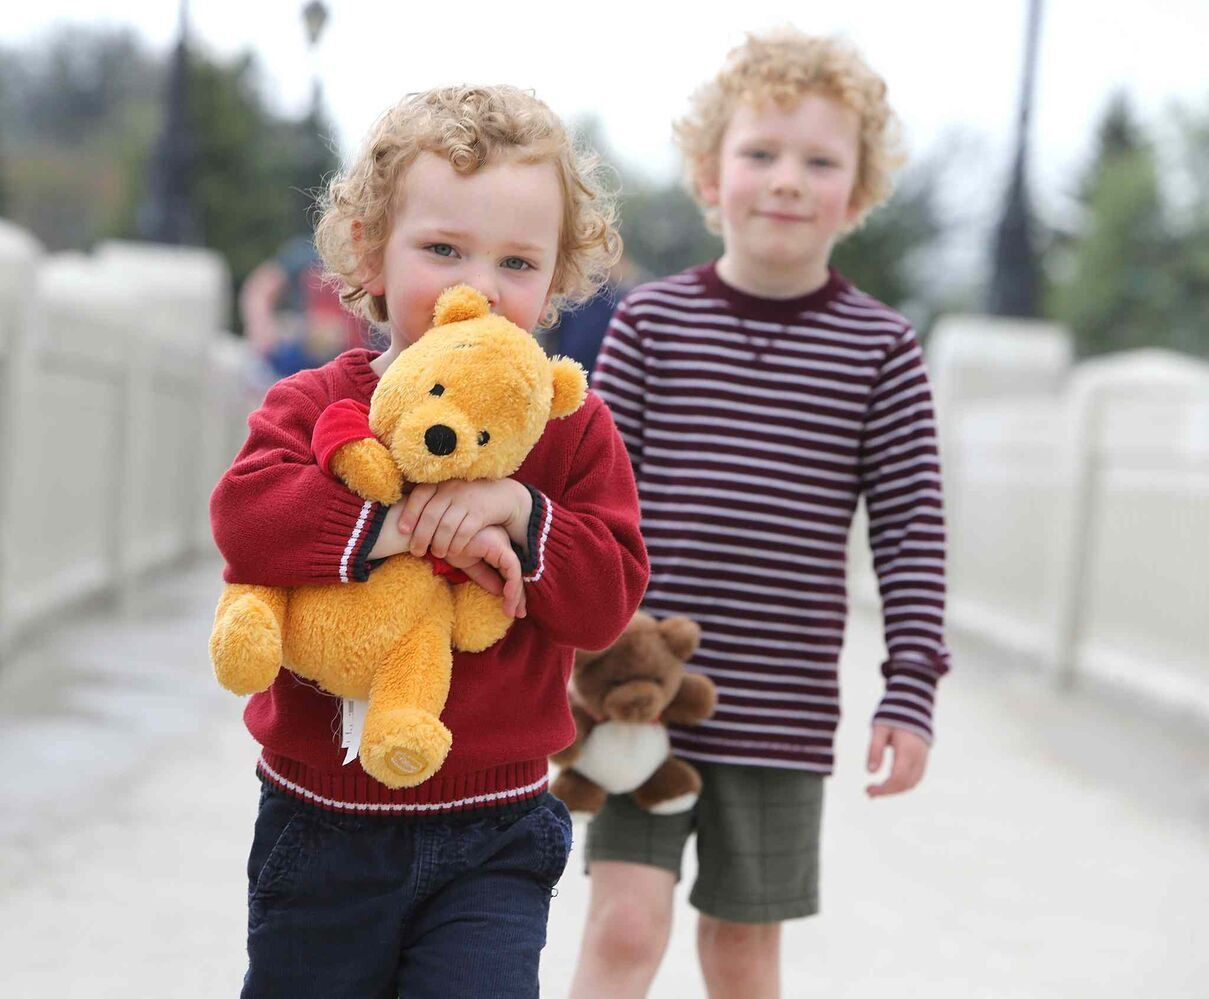 Brendan McCorkell, 3, and brother Matthew, 6, arrive for the 28th annual Teddy Bears Picnic at Assiniboine Park Sunday. The event is a fundraiser for the Children's Hospital Foundation of Manitoba. Photo by Jason Halstead/Winnipeg Free Press (Jason Halstead)